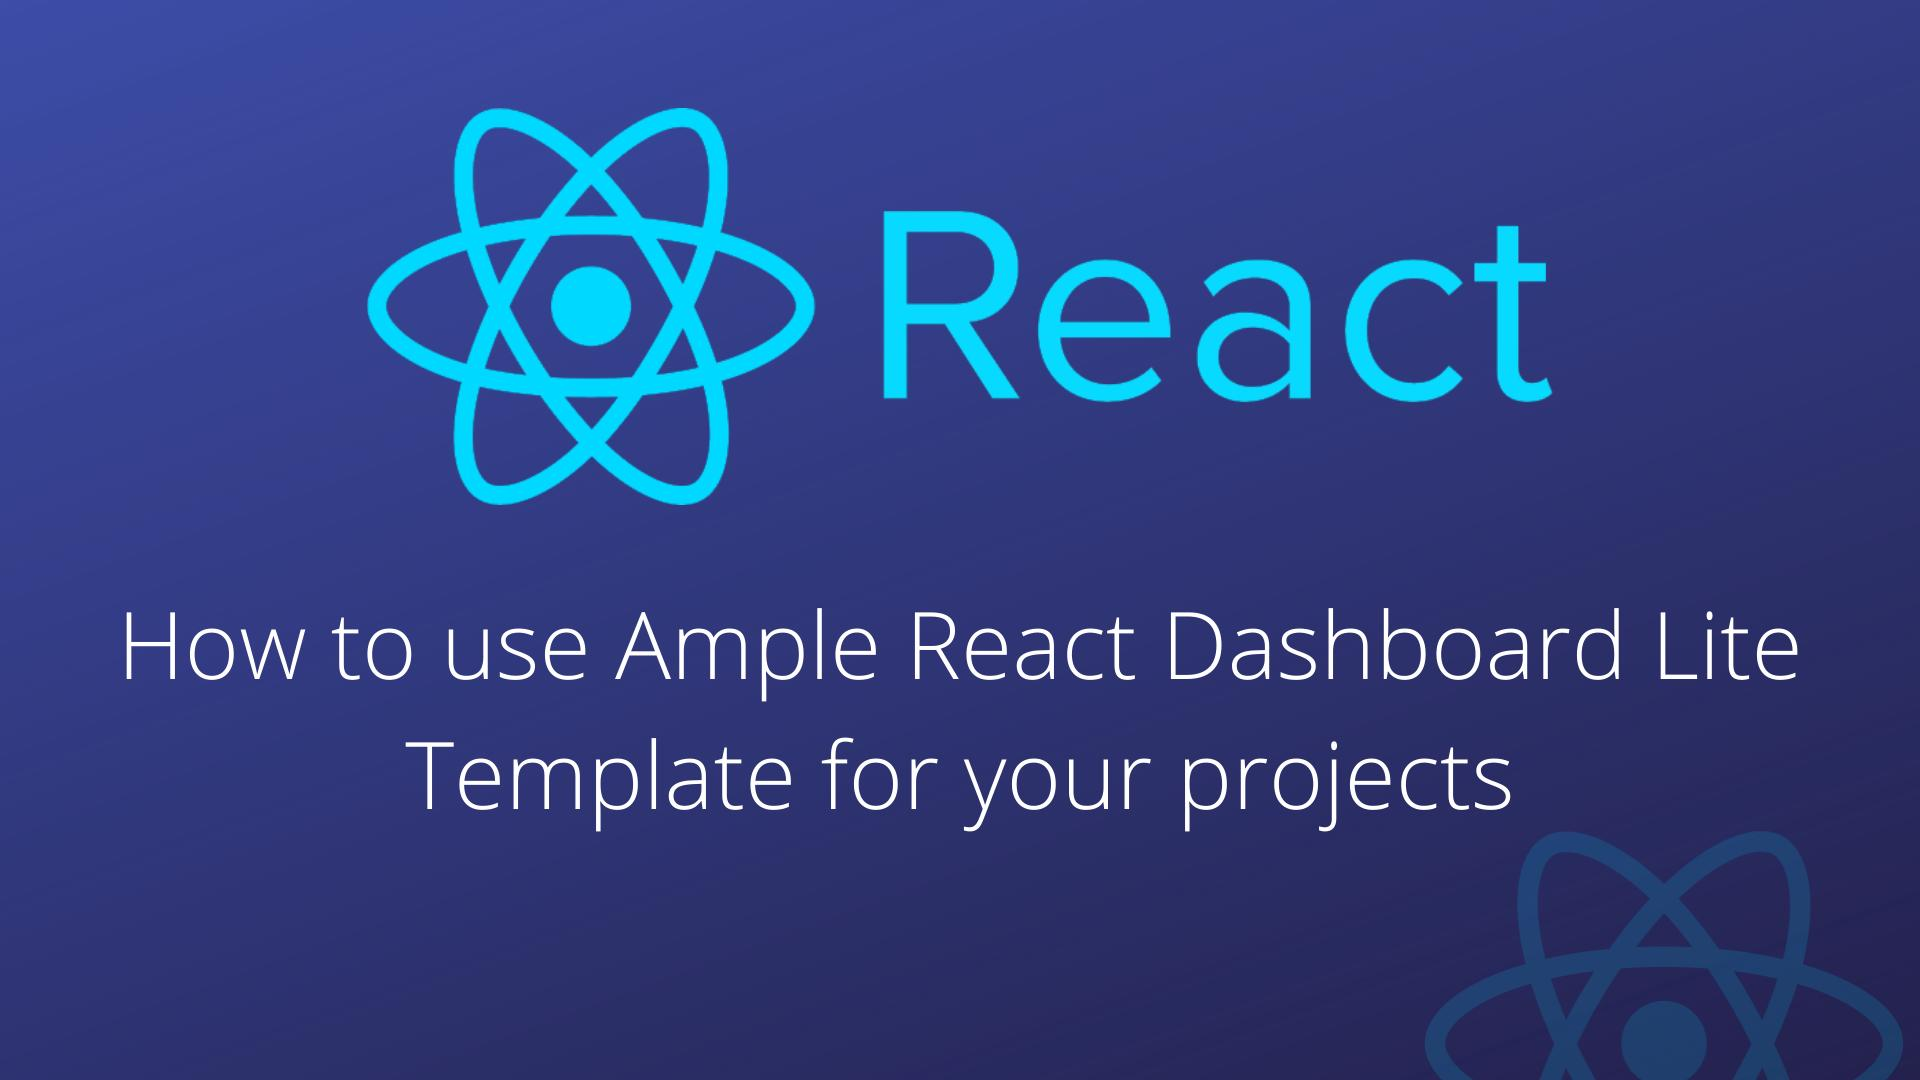 How to use Ample React Dashboard Lite Template for your projects